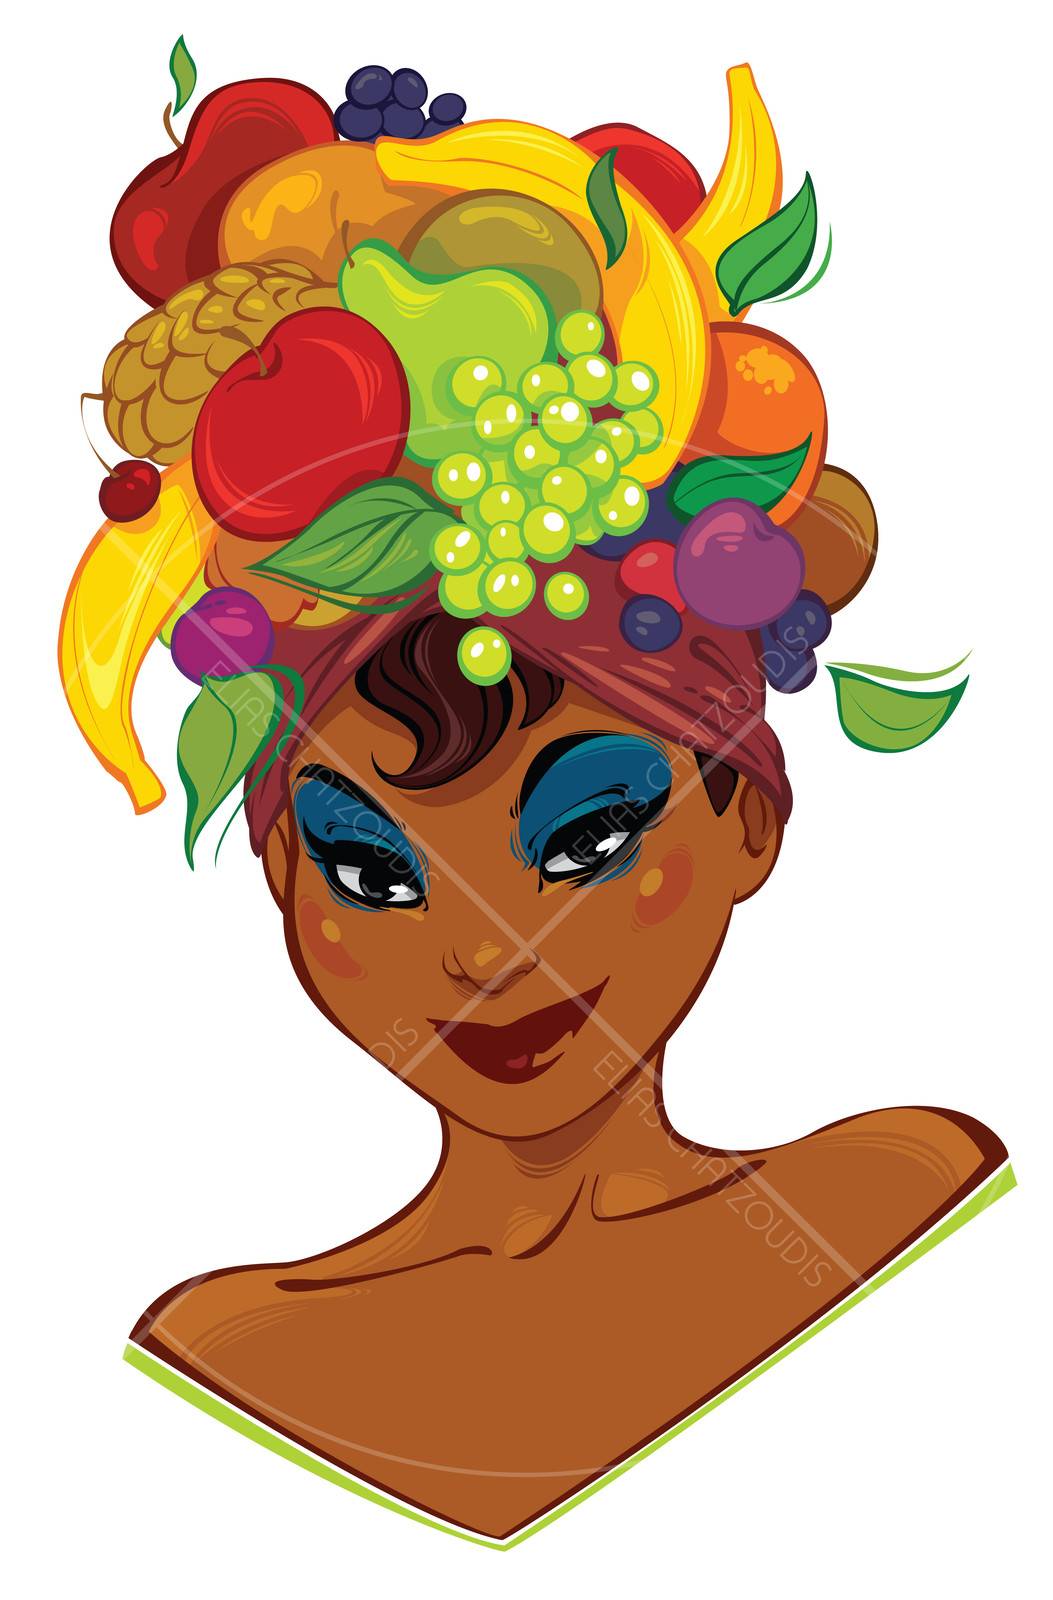 Fruits on head